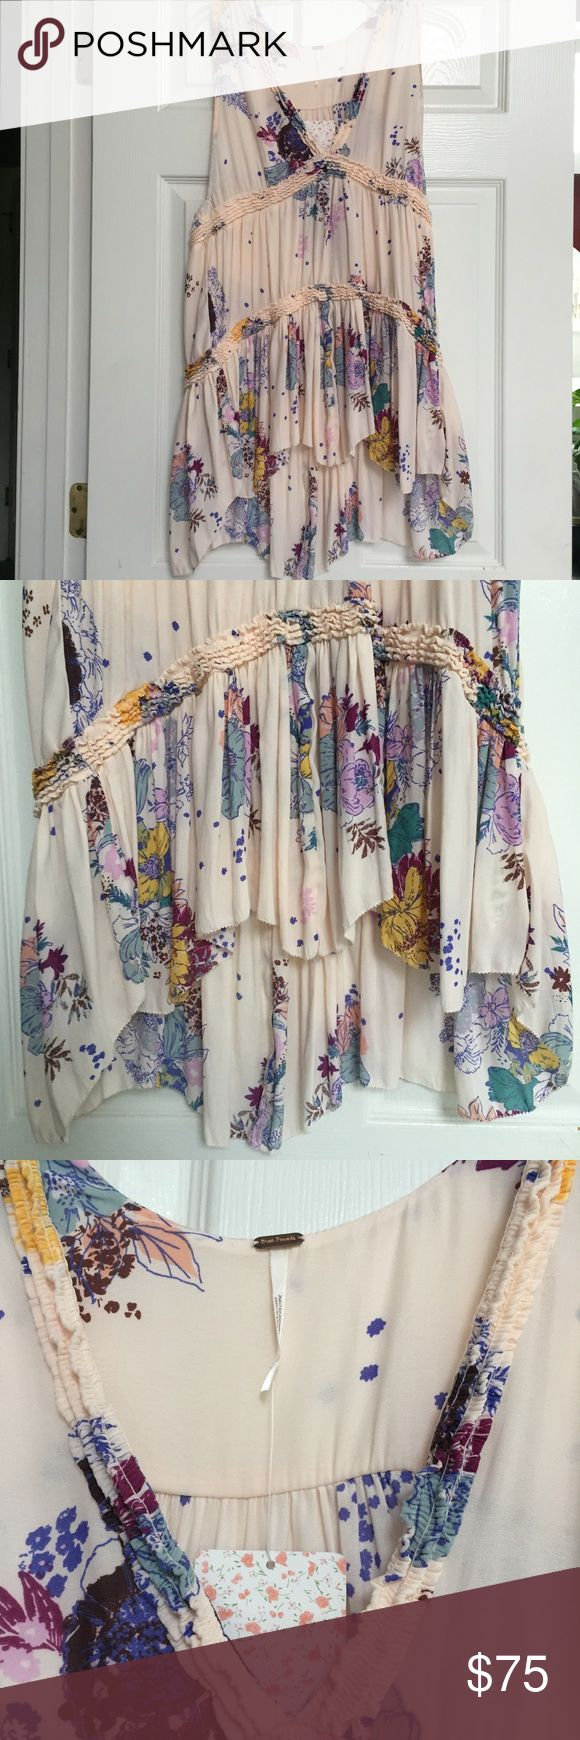 Free People Cream Combo Trapeze Dress Size S Free People trapeze dress. Cream Combo with hues of pink, purple, blue, yellow, burgundy.  Size S  100% polyester   NWT new with tags Beautiful and flowing Free People Dresses